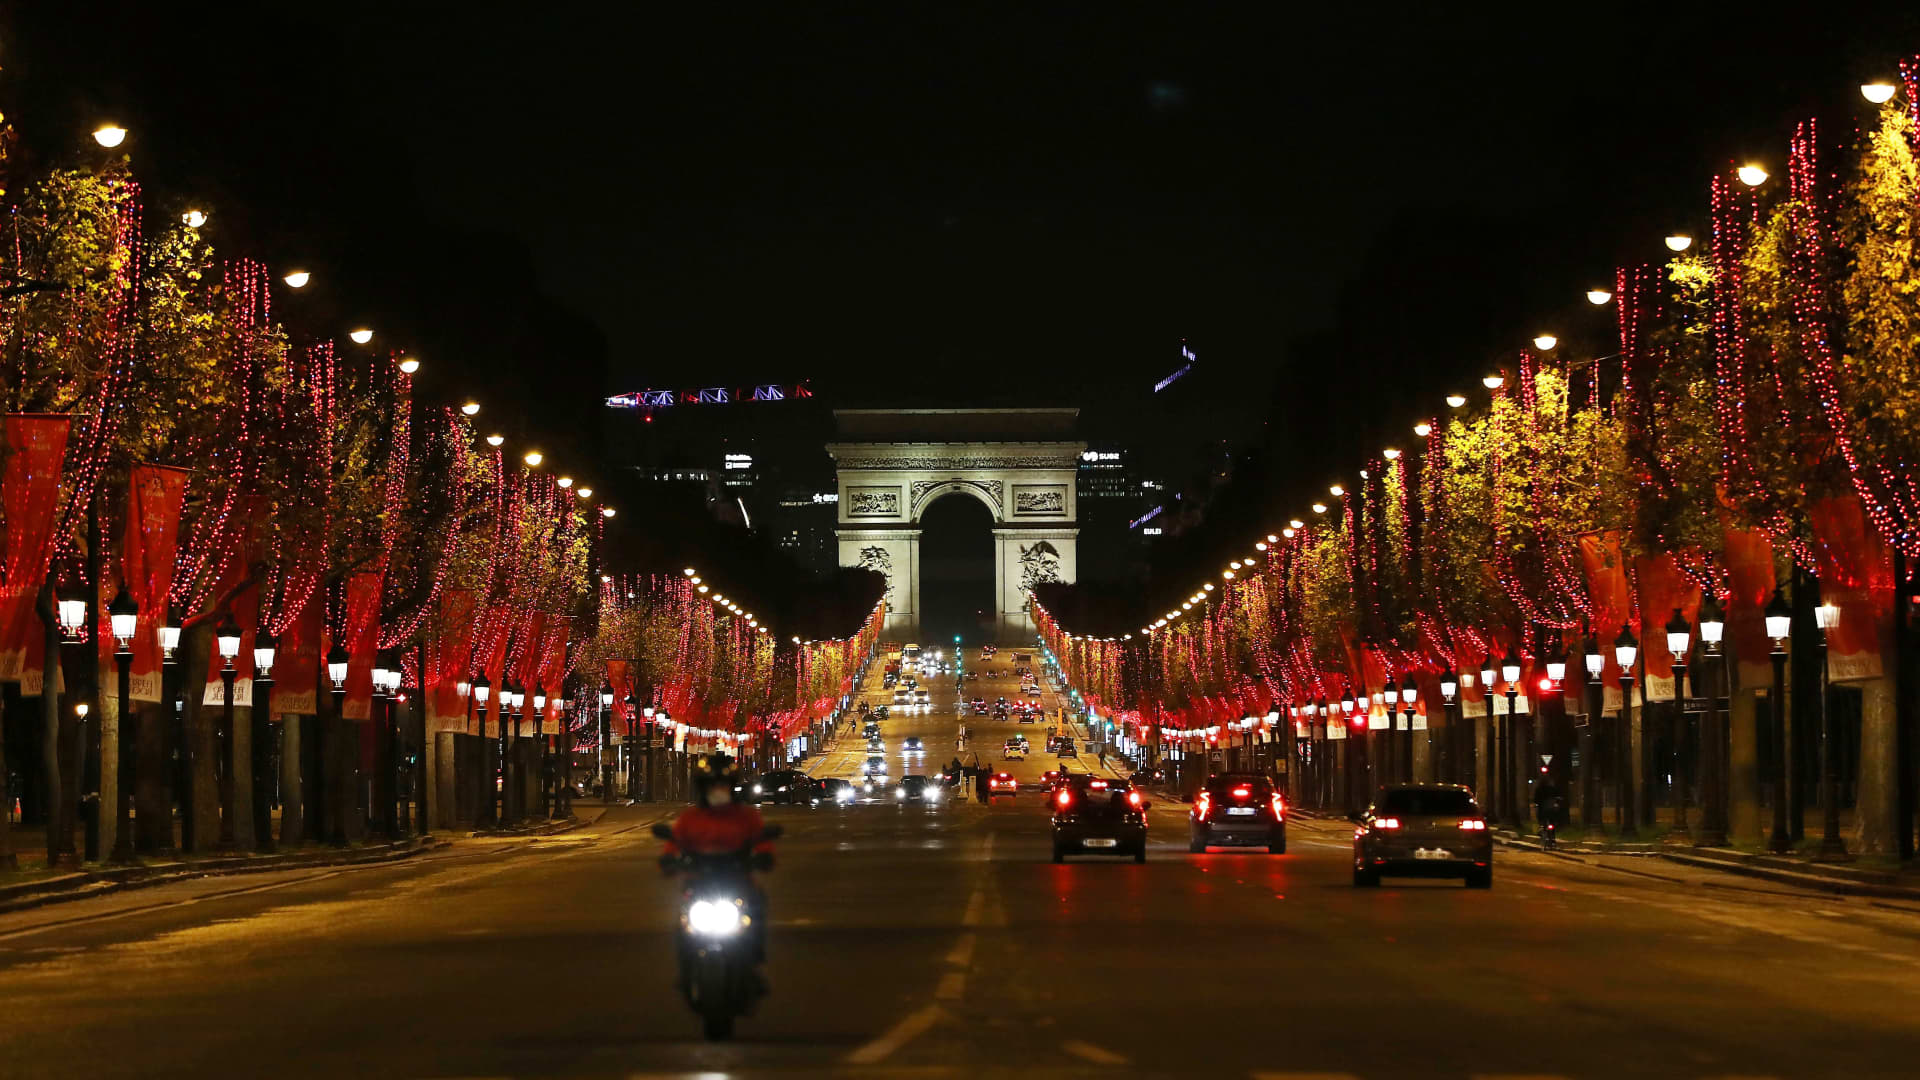 The Champs-Elysees Avenue and the Arc de Triomphe are seen after the Christmas illuminations were switched on in Paris, France, Nov. 22, 2020.